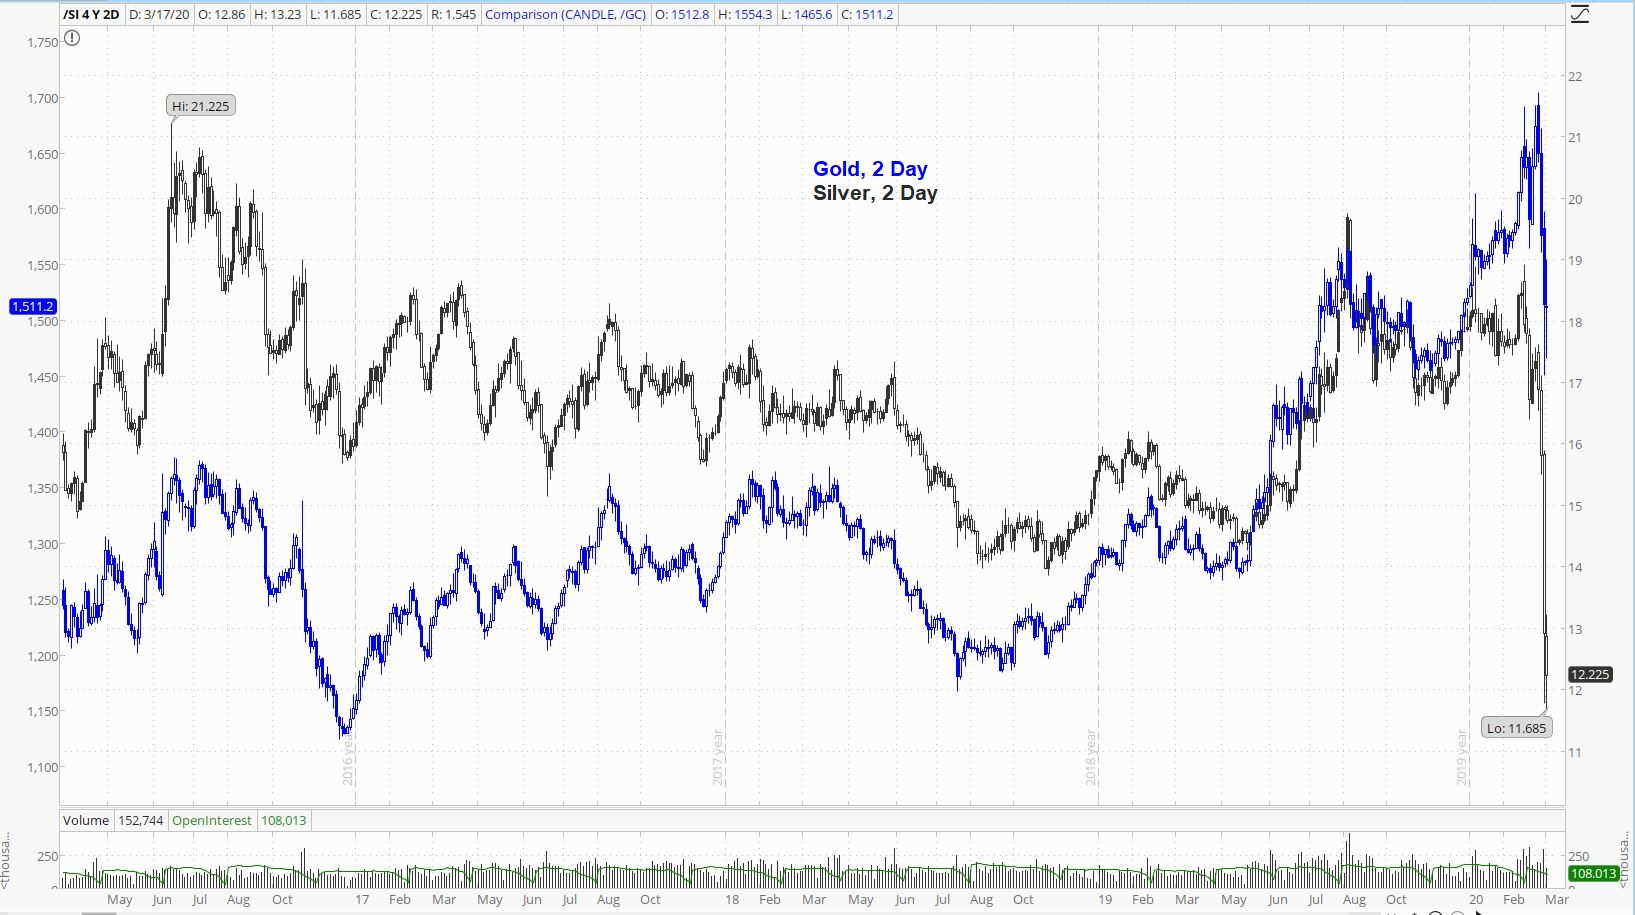 Gold Silver 2 Day Chart